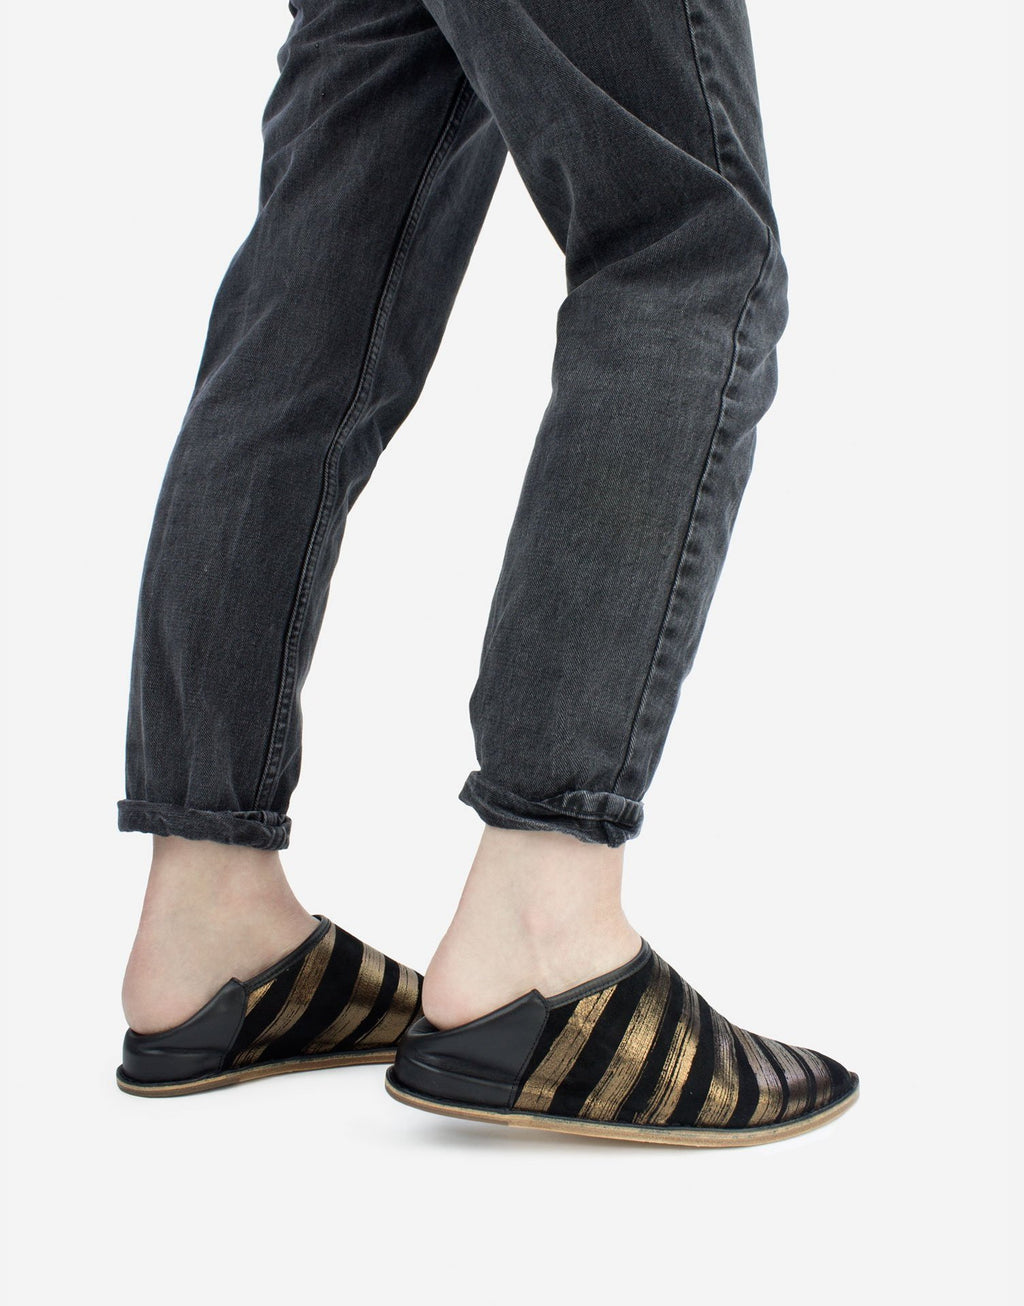 Black suede slip on slipper shoe with signature brush stroke stripes in bronze metallic